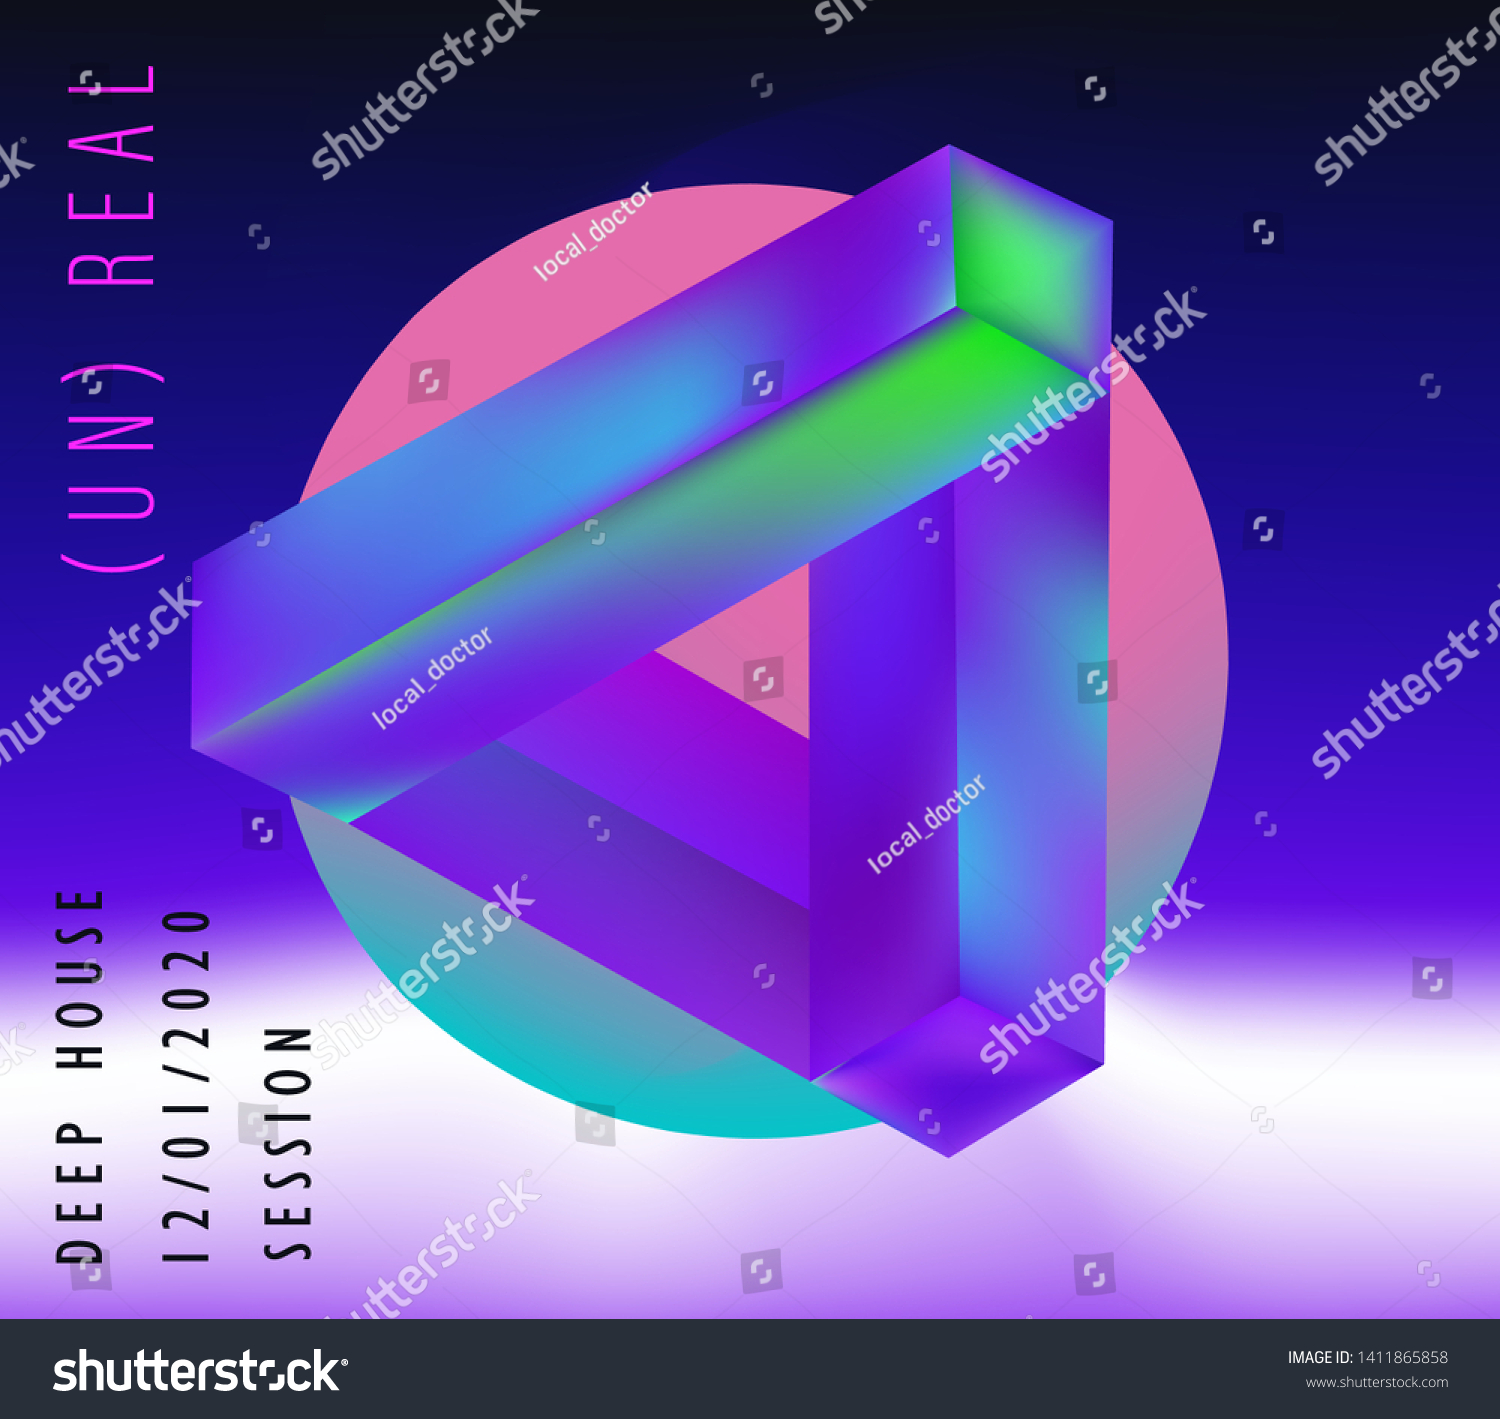 23+ Vaporwave Neon Triangle Images